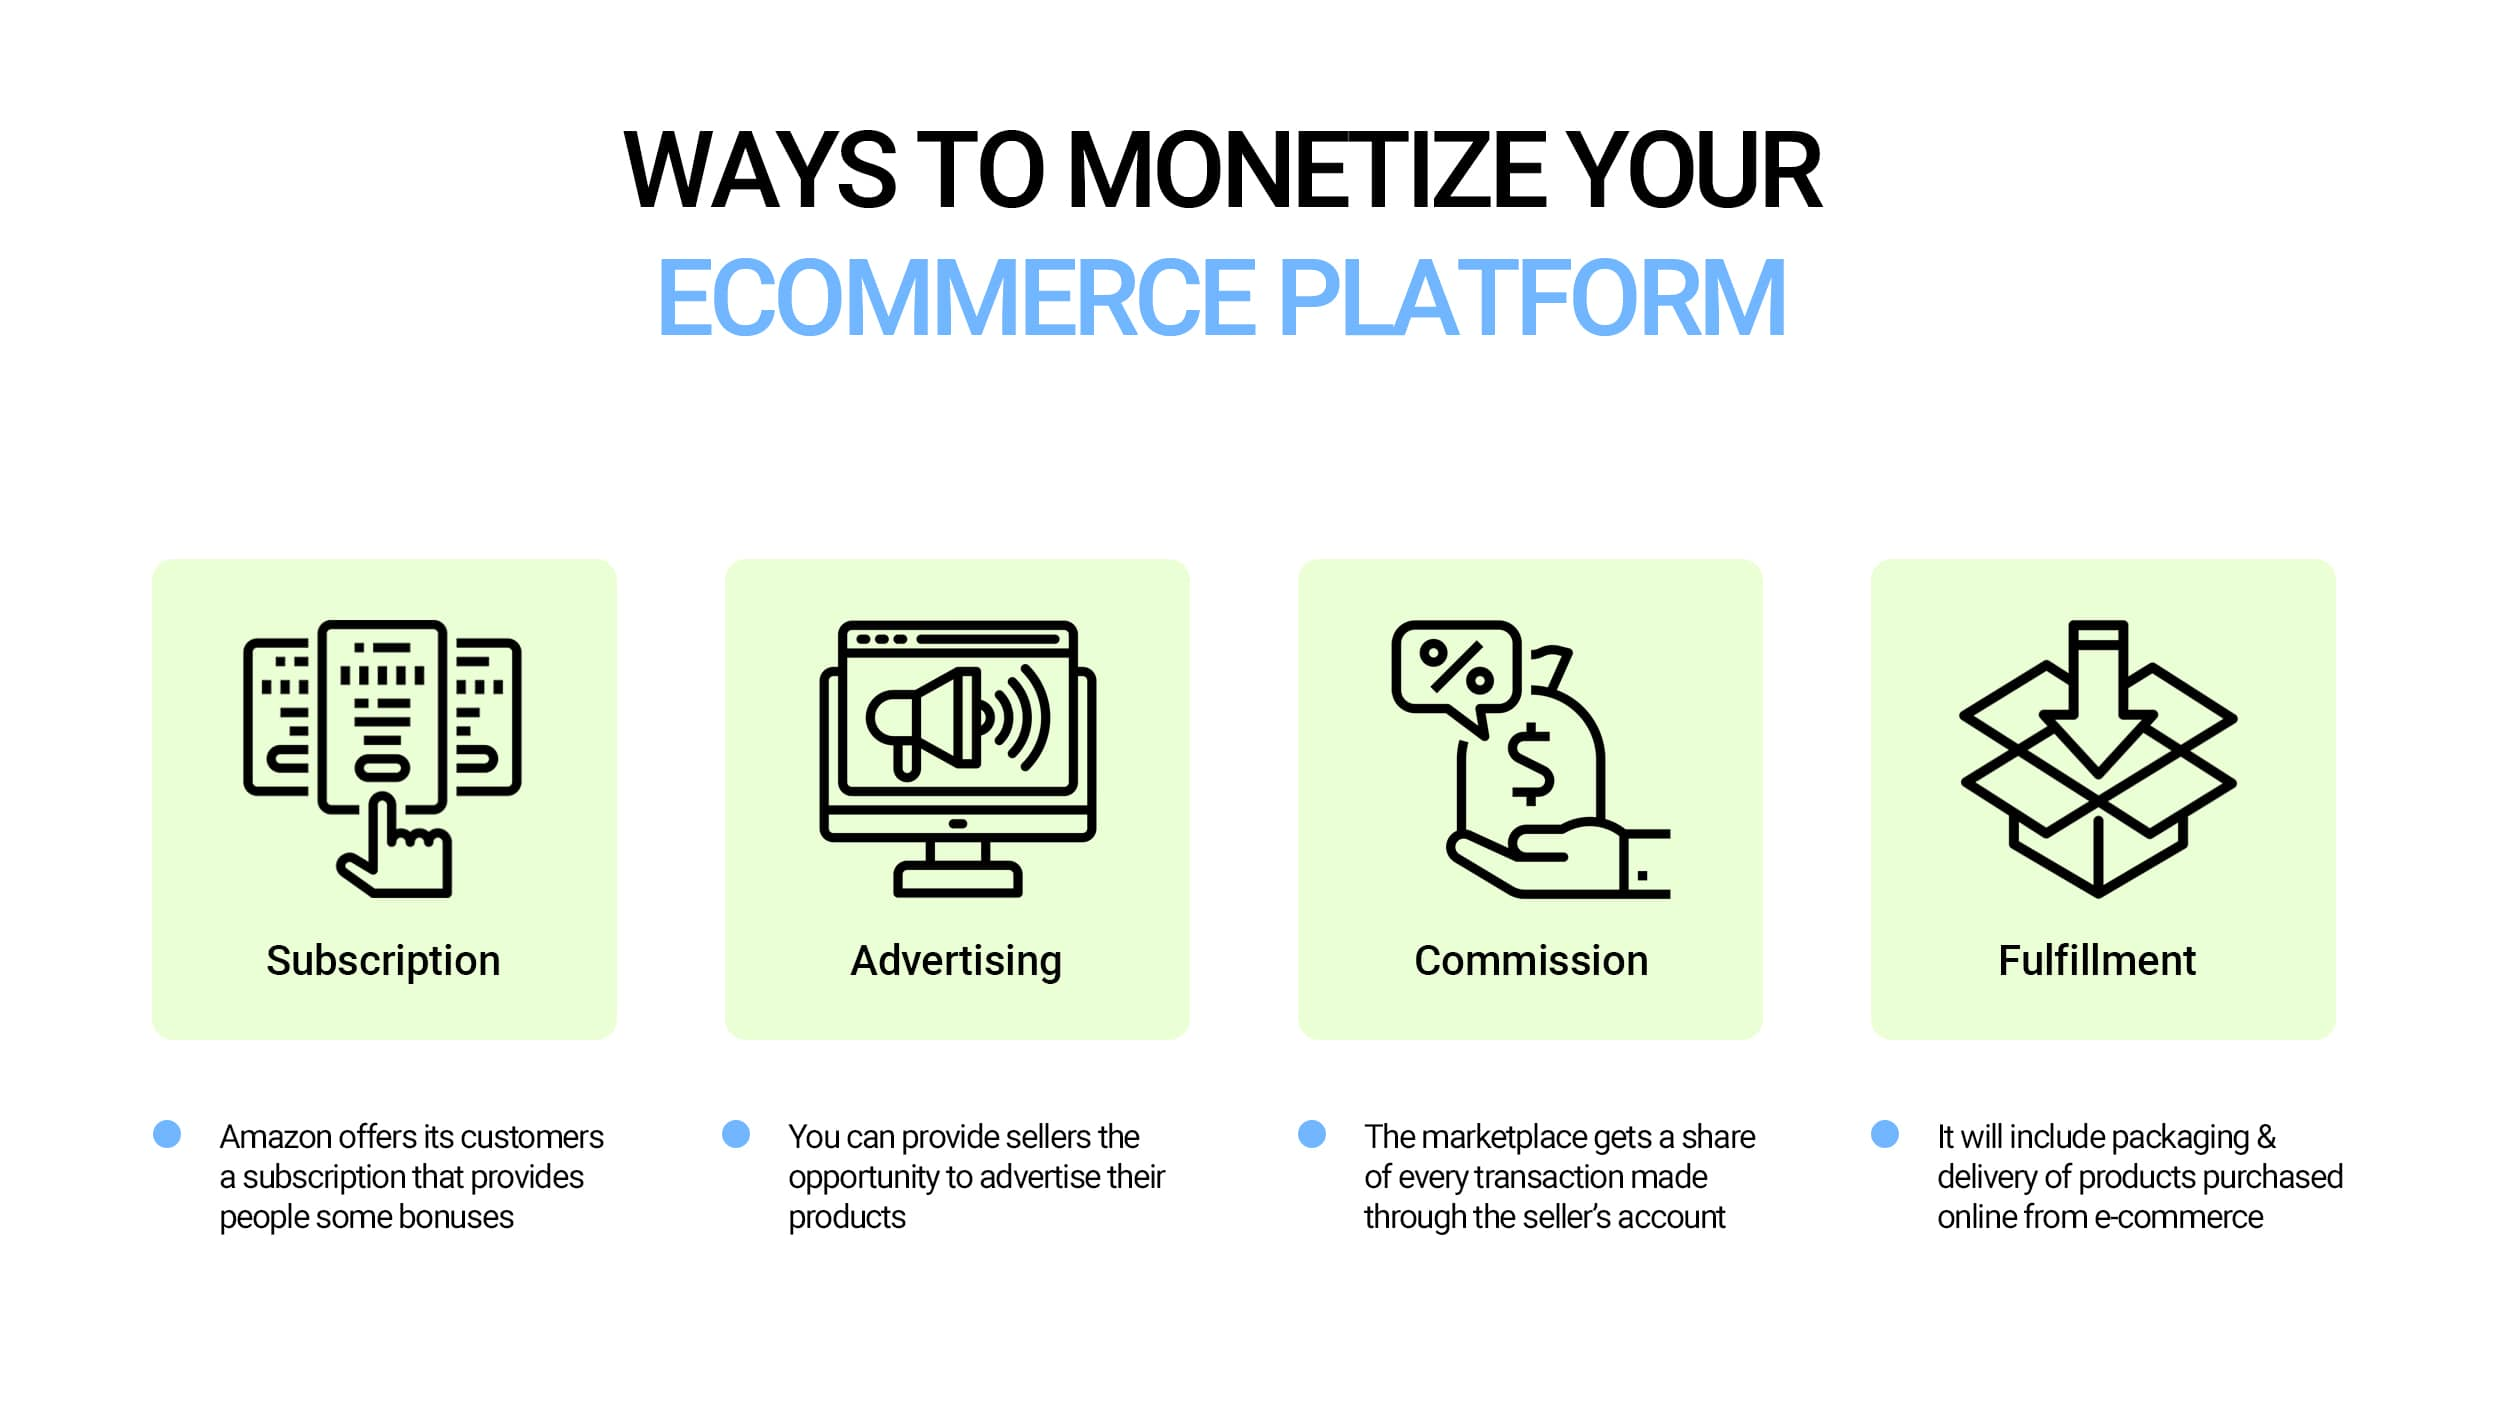 Ways to monetize your ecommerce platform